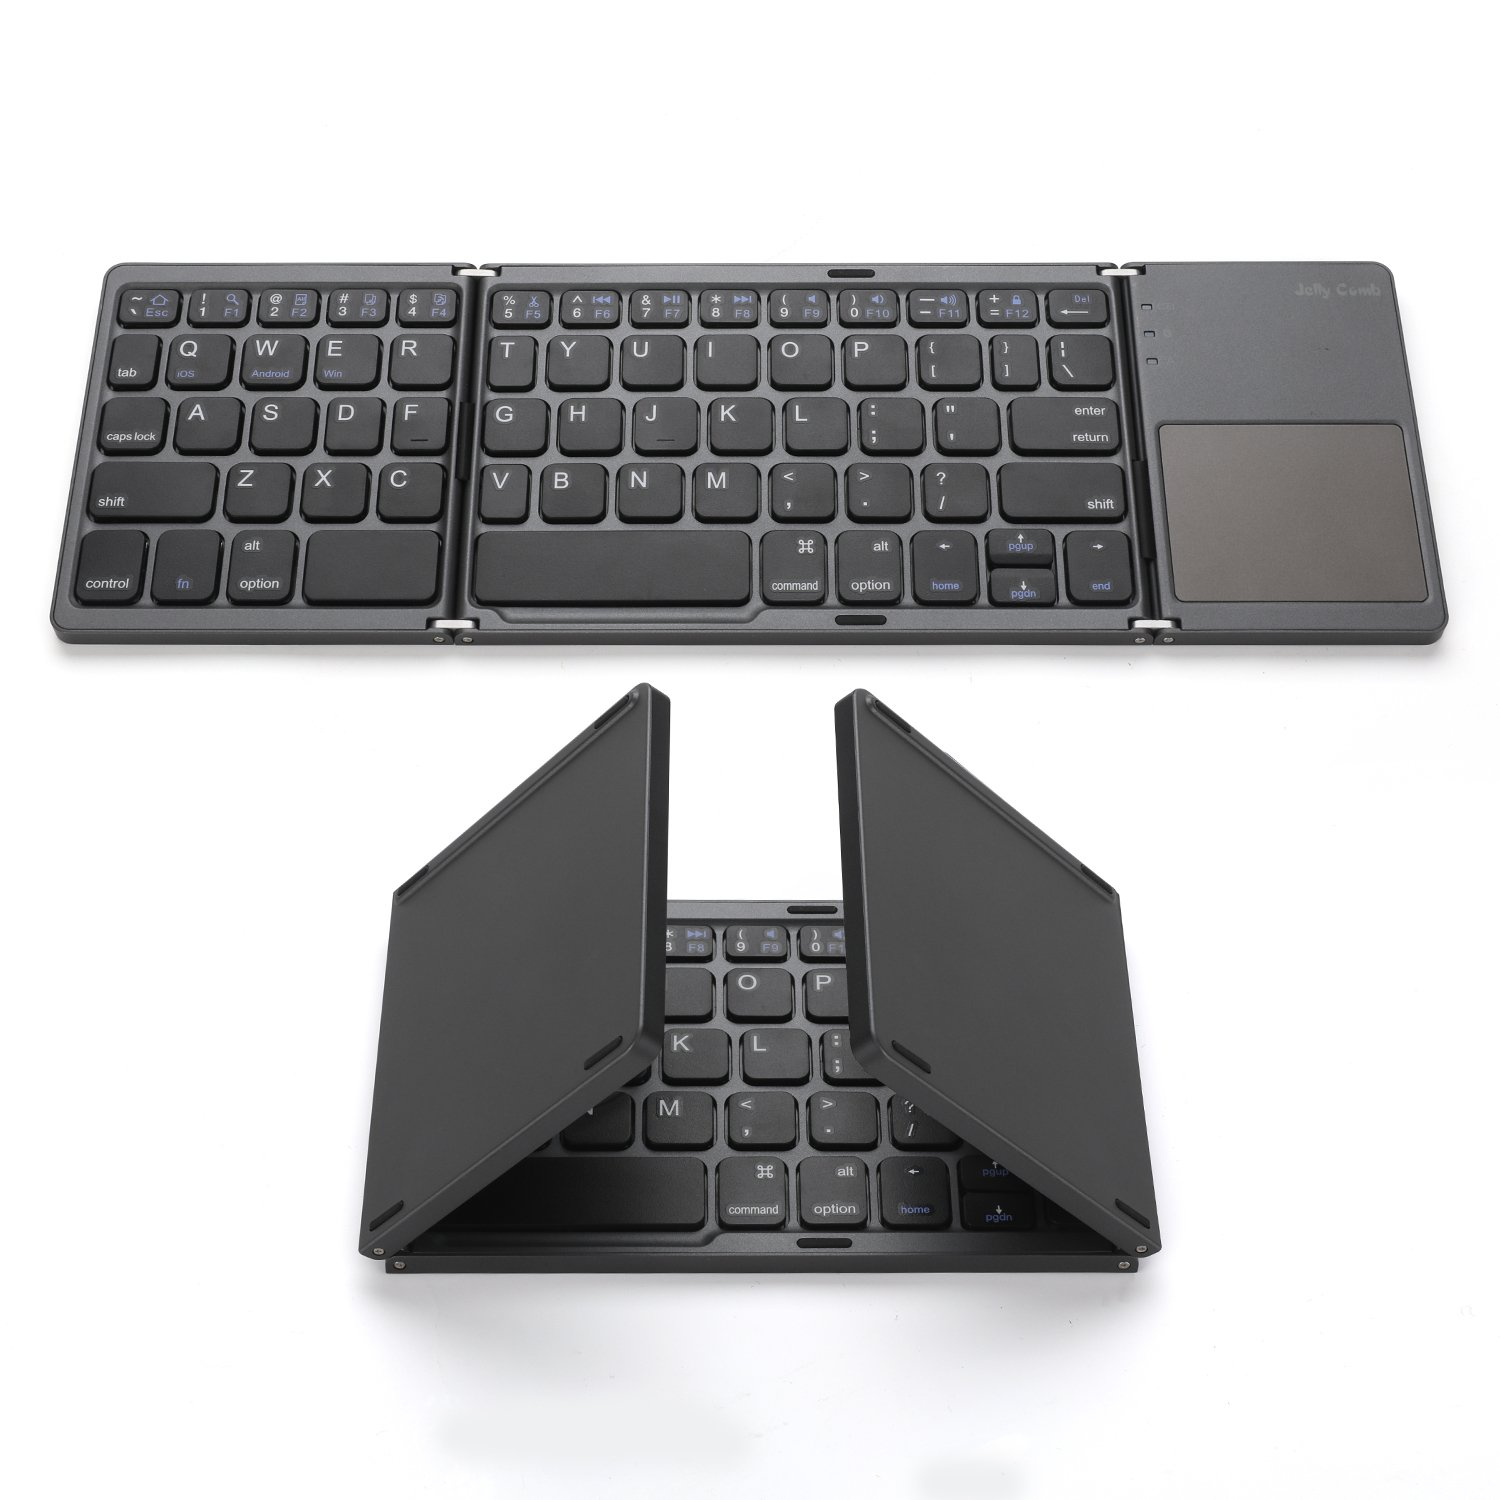 Foldable Bluetooth Keyboard, Jelly Comb Pocket Size Portable Mini BT Wireless Keyboard with Touchpad for iOS, Android, Windows, PC, Tablet, with Rechargable Li-ion Battery by Jelly Comb